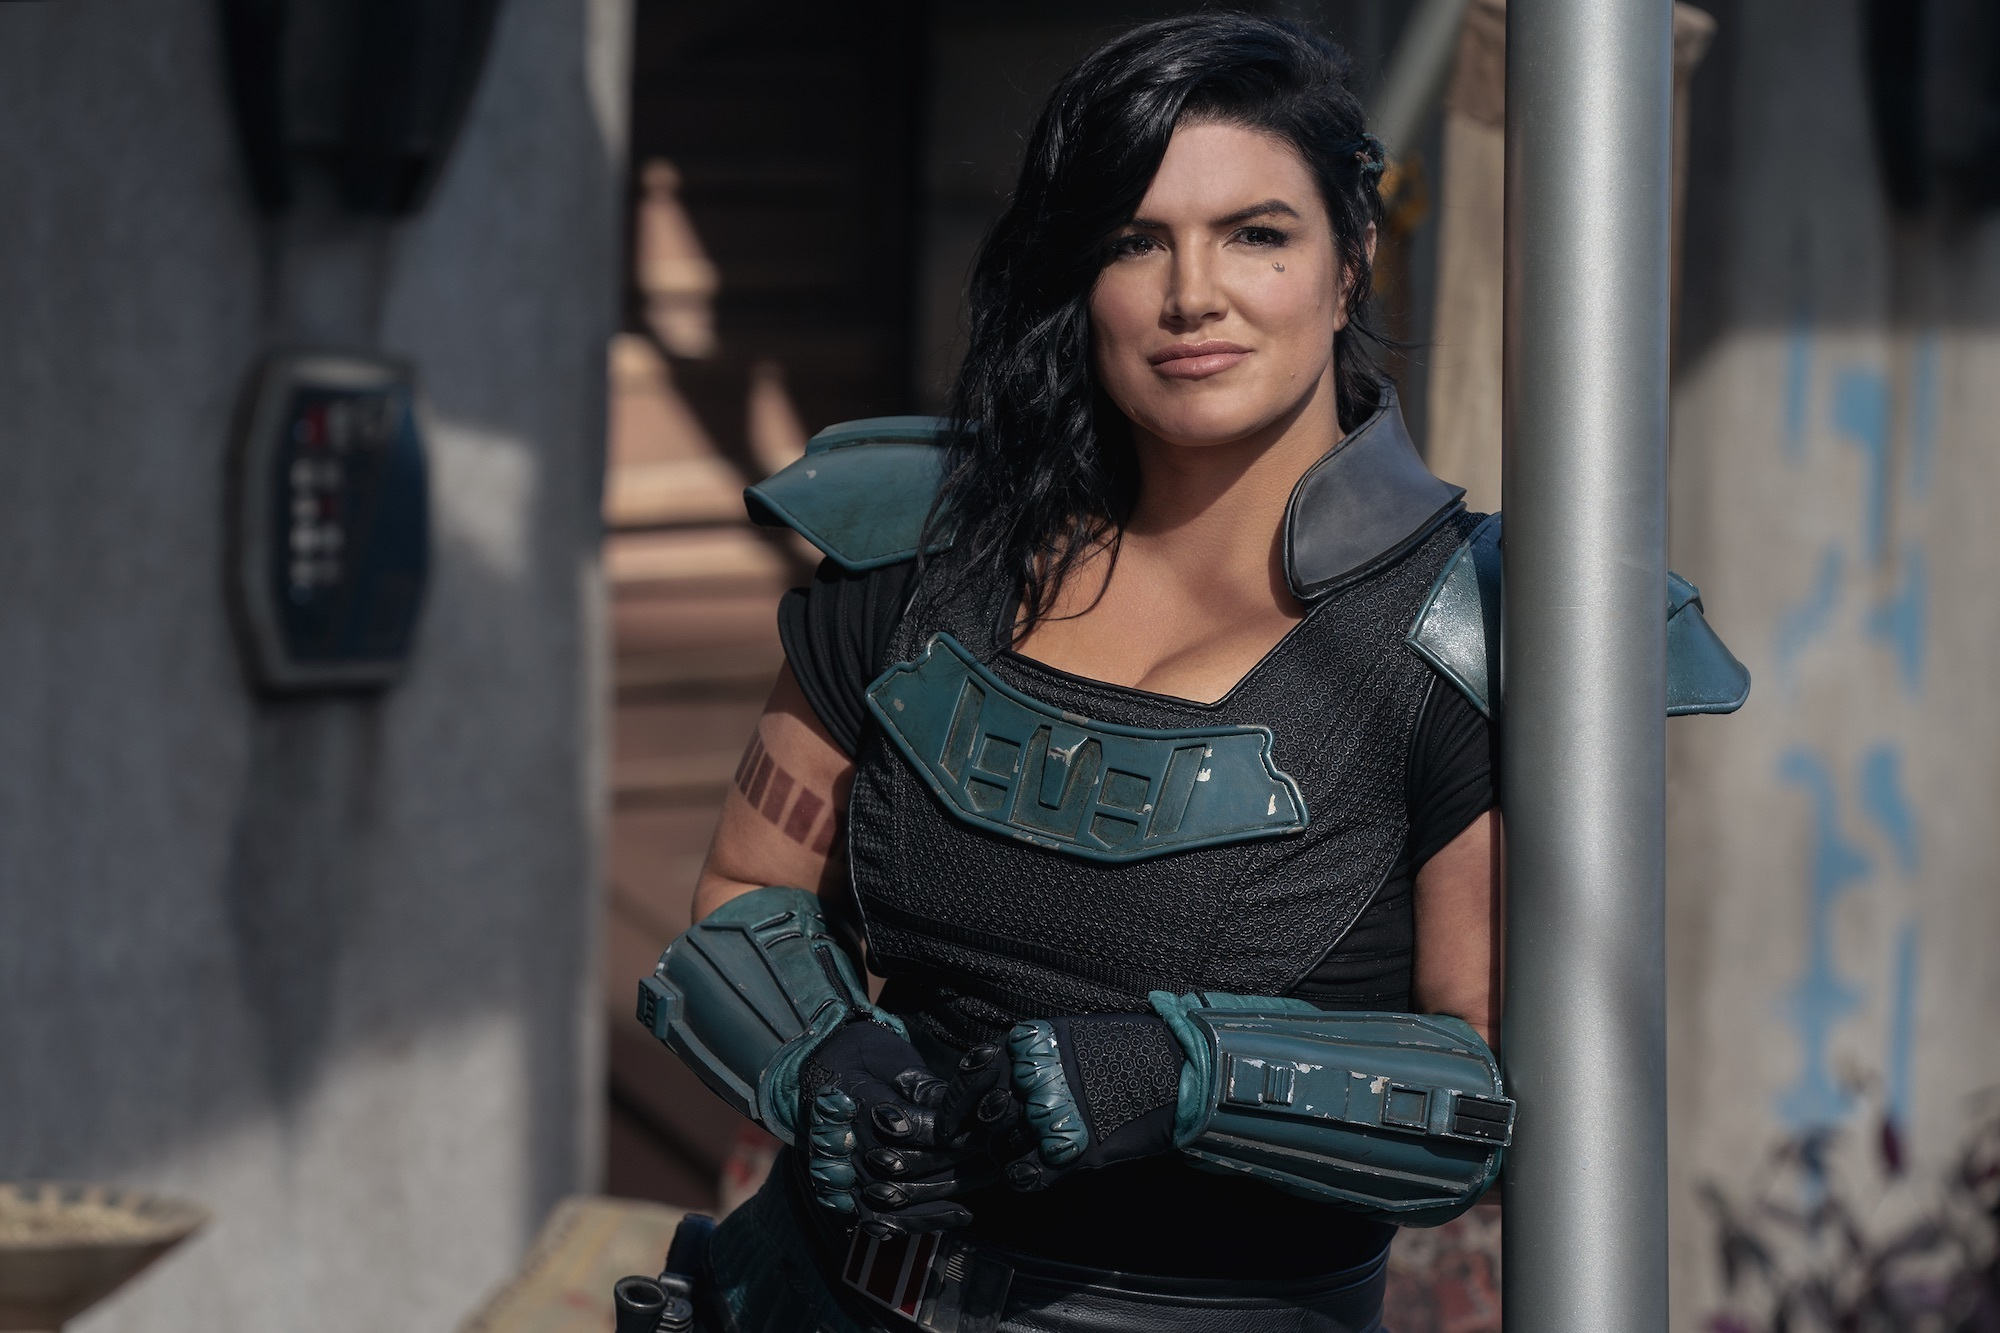 Gina Carano in Chapter 12: The Siege (2020)